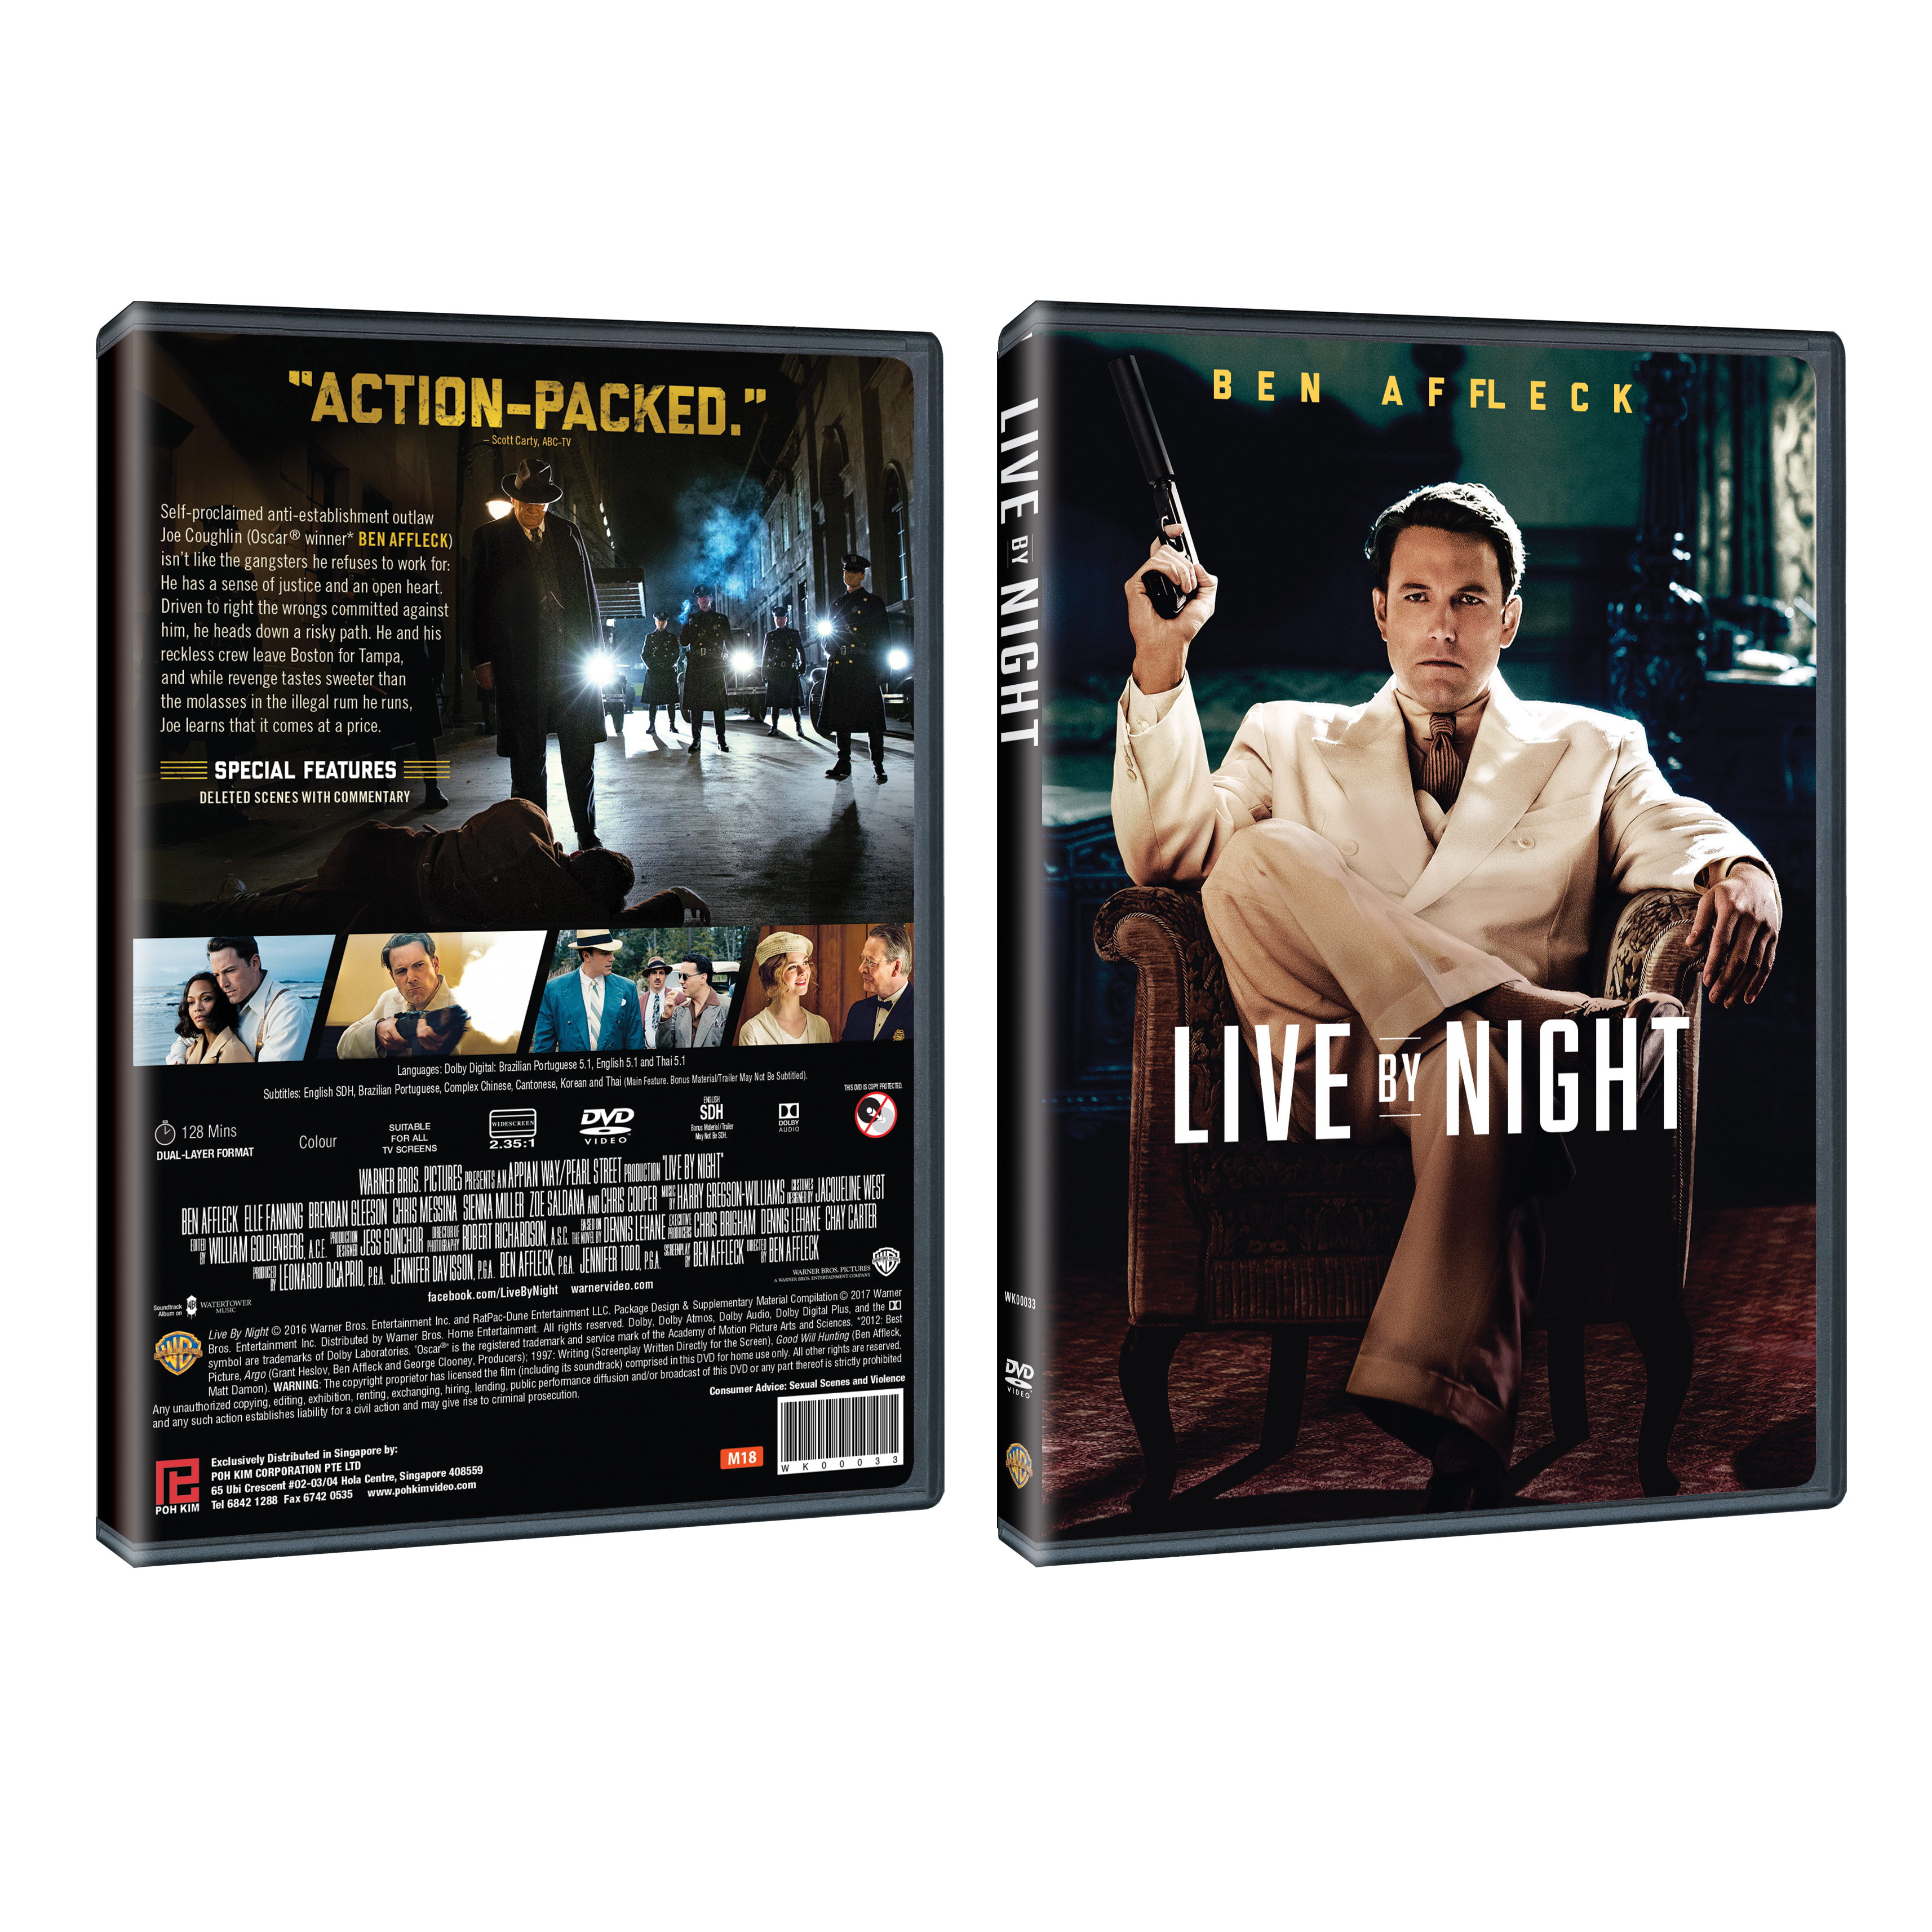 LIVE BY NIGHT DVD Packshot